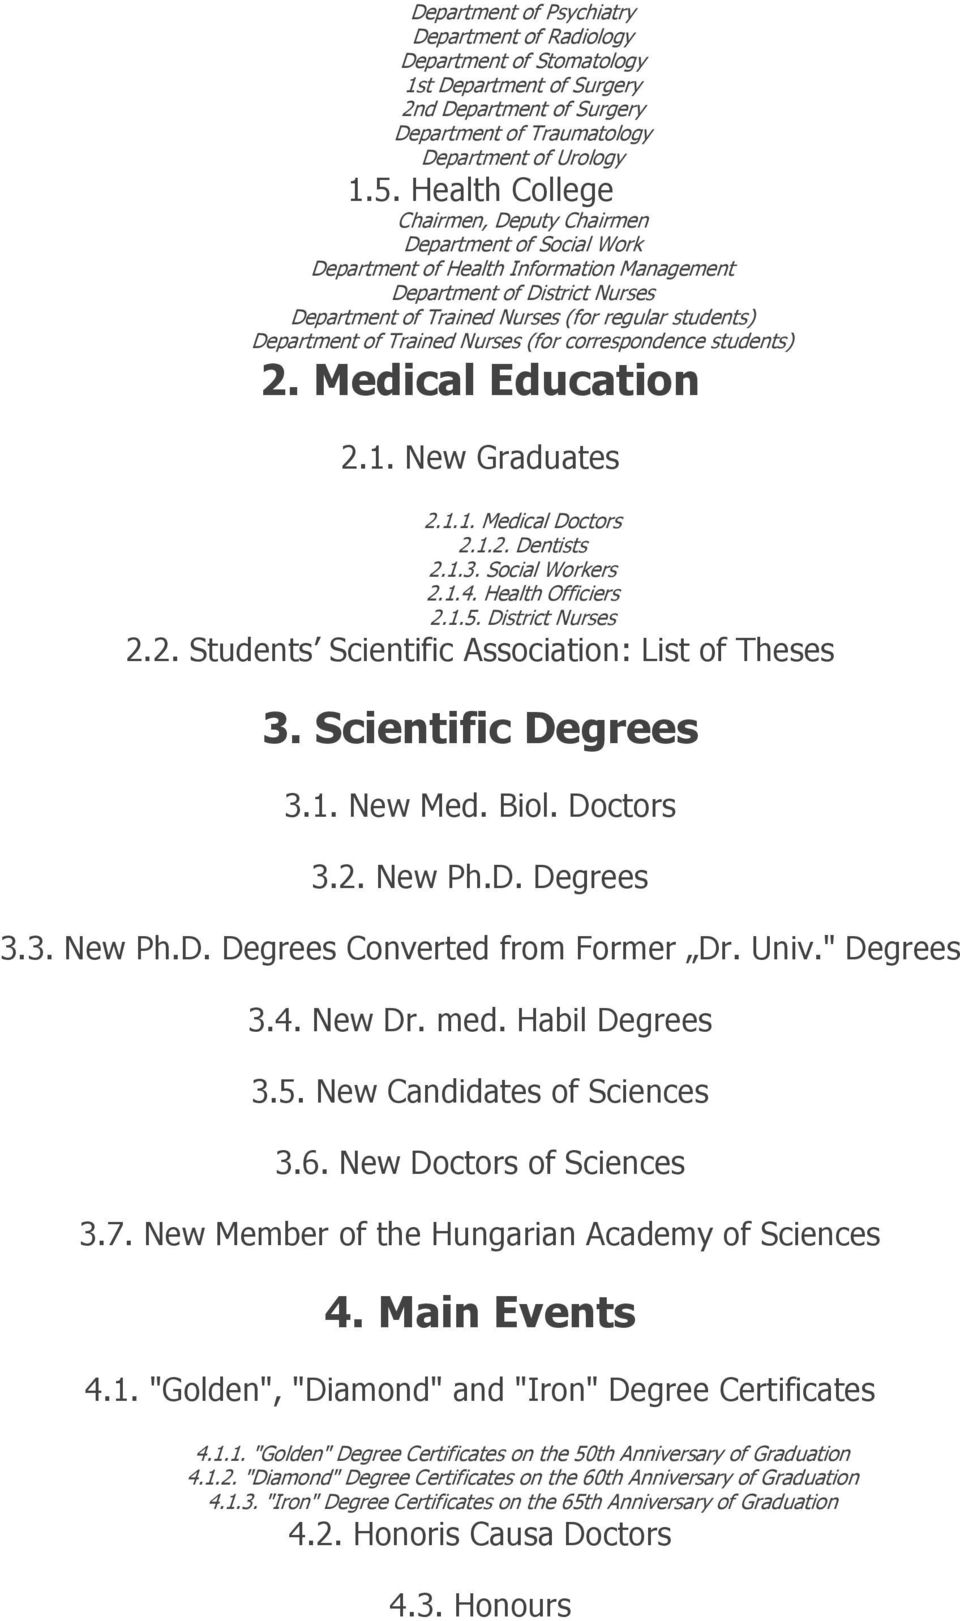 Department of Trained Nurses (for correspondence students) 2. Medical Education 2.1. New Graduates 2.1.1. Medical Doctors 2.1.2. Dentists 2.1.3. Social Workers 2.1.4. Health Officiers 2.1.5.